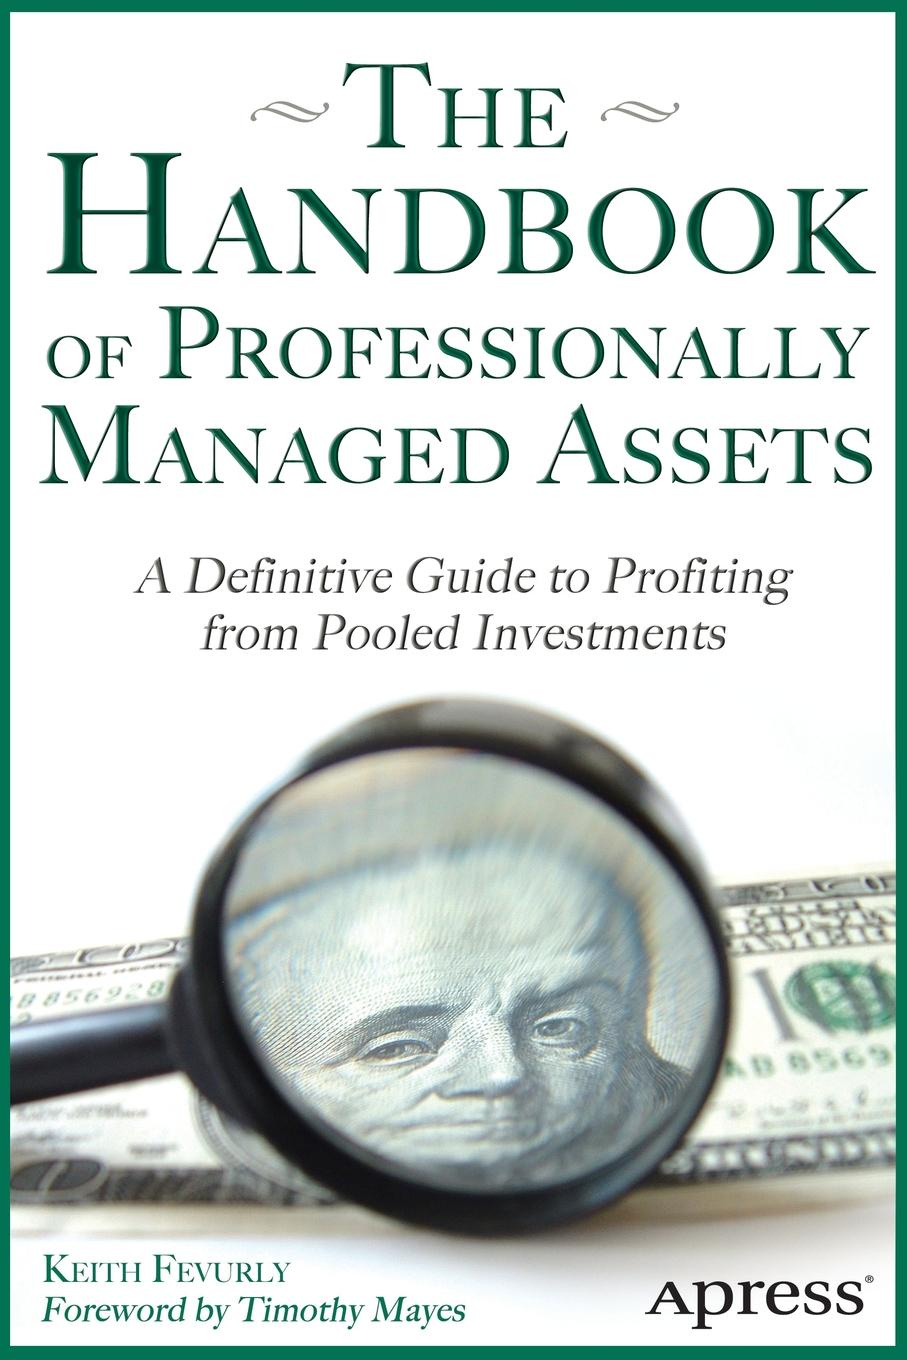 Keith R. Fevury, Keith R. Fevurly The Handbook of Professionally Managed Assets. A Definitive Guide to Profiting from Alternative Investments john price the conscious investor profiting from the timeless value approach